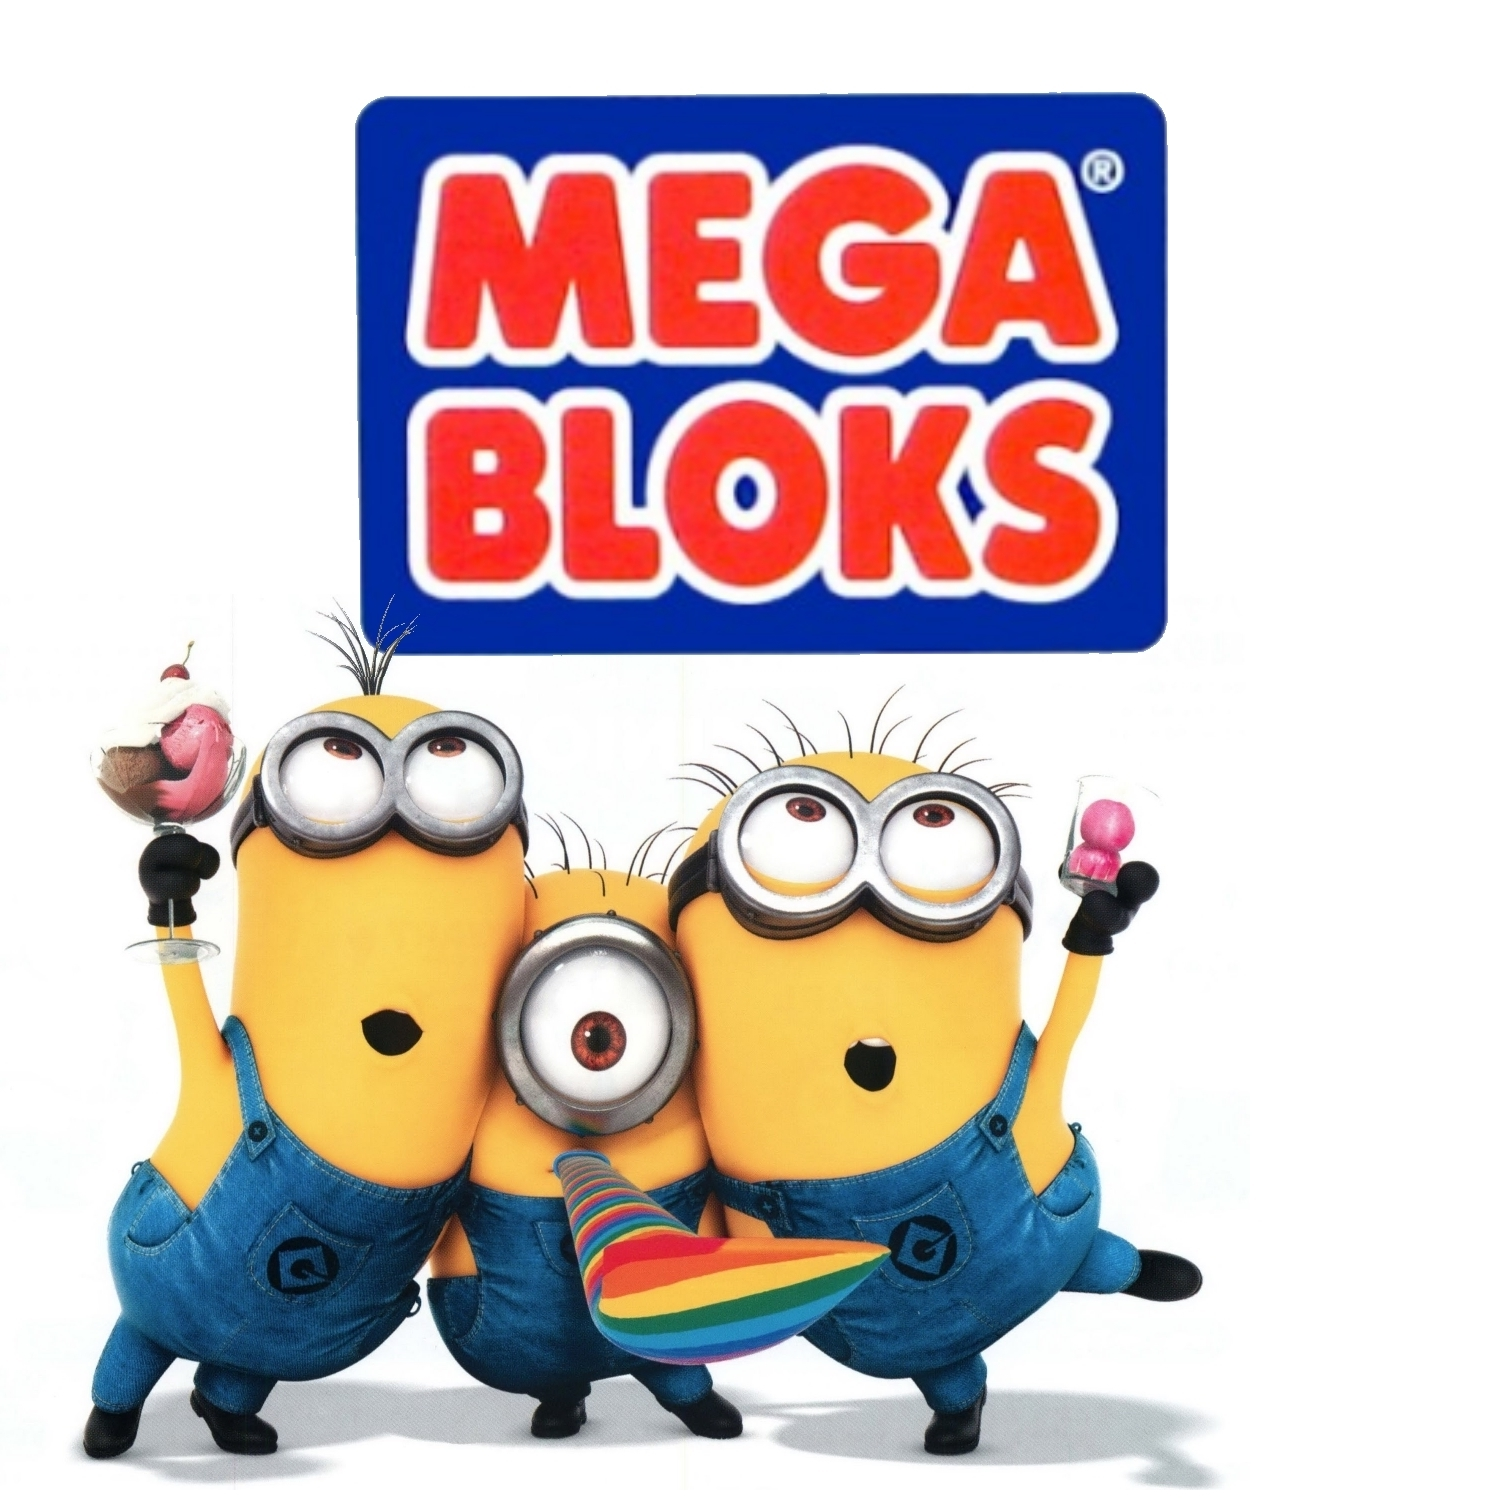 Mega Bloks Despicable ME Minions Celebration B.A. Toys Blitz Bundle officially licensed Mega Bloks Despicable Me product at B.A. Toys.